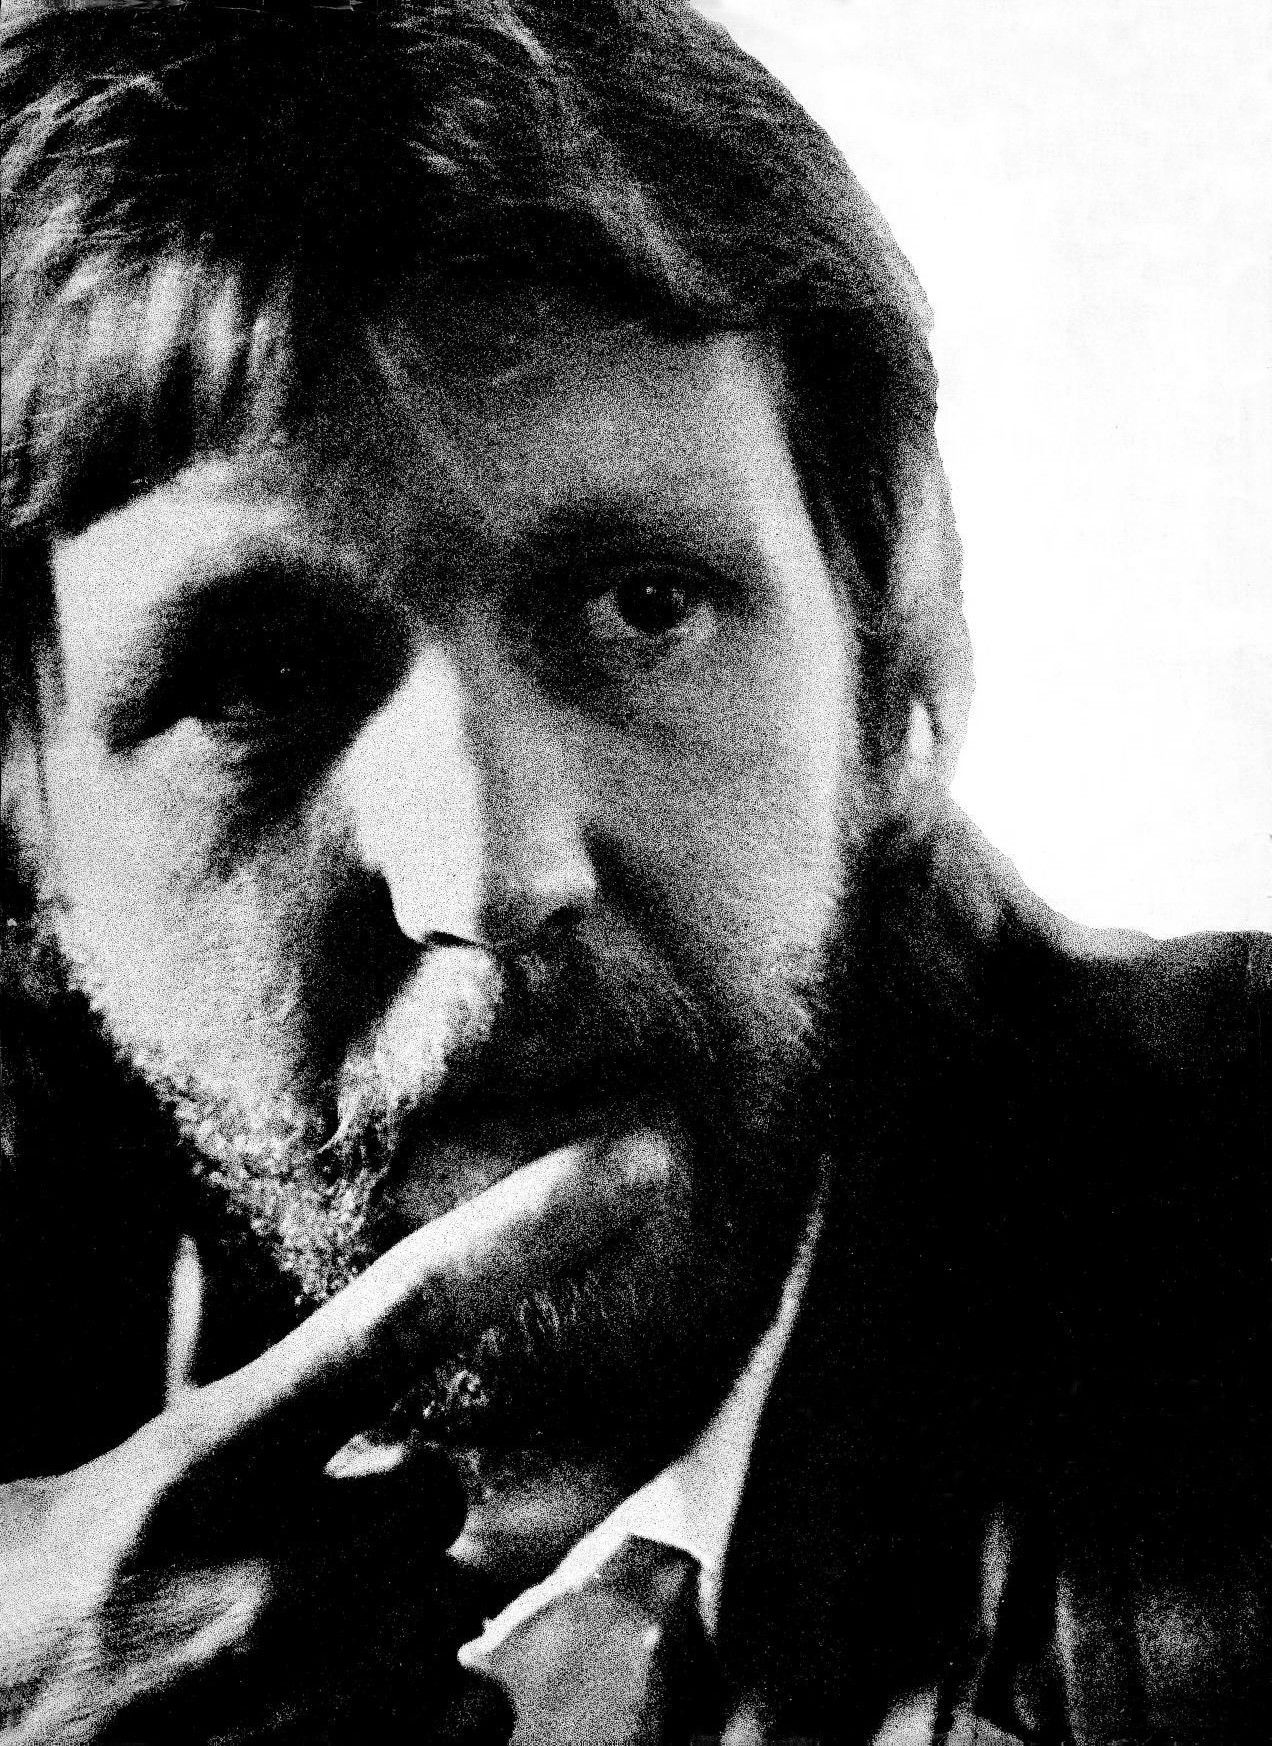 Pin by Tony Ramon on Nilsson (With images) Harry nilsson